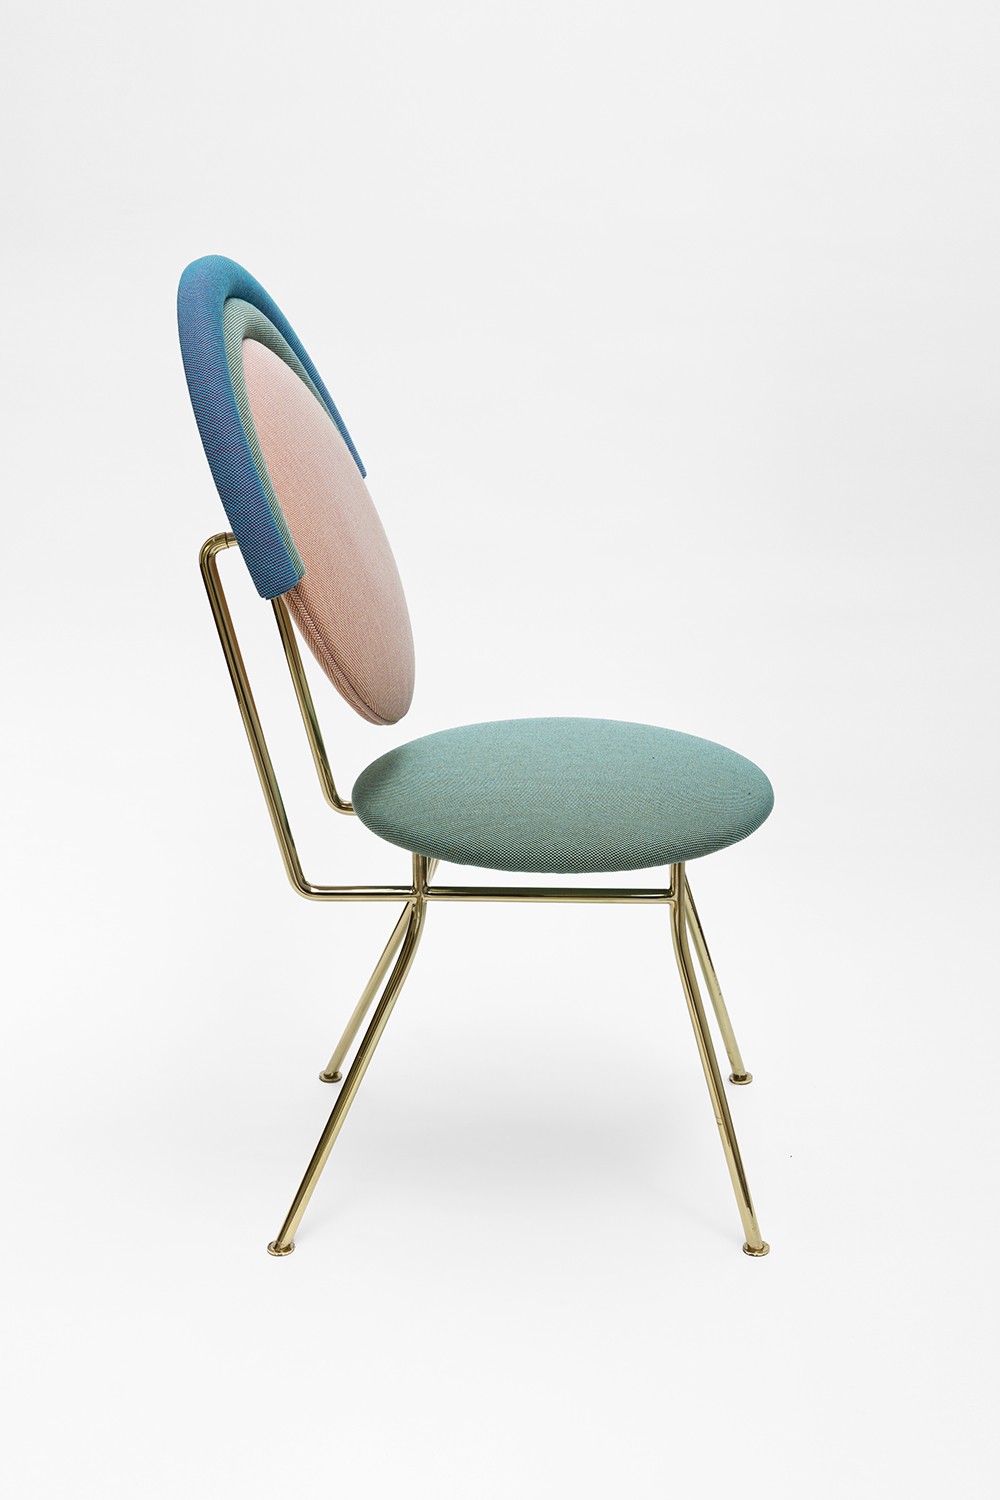 merve kahraman products interiors iris chair side 2.jpg